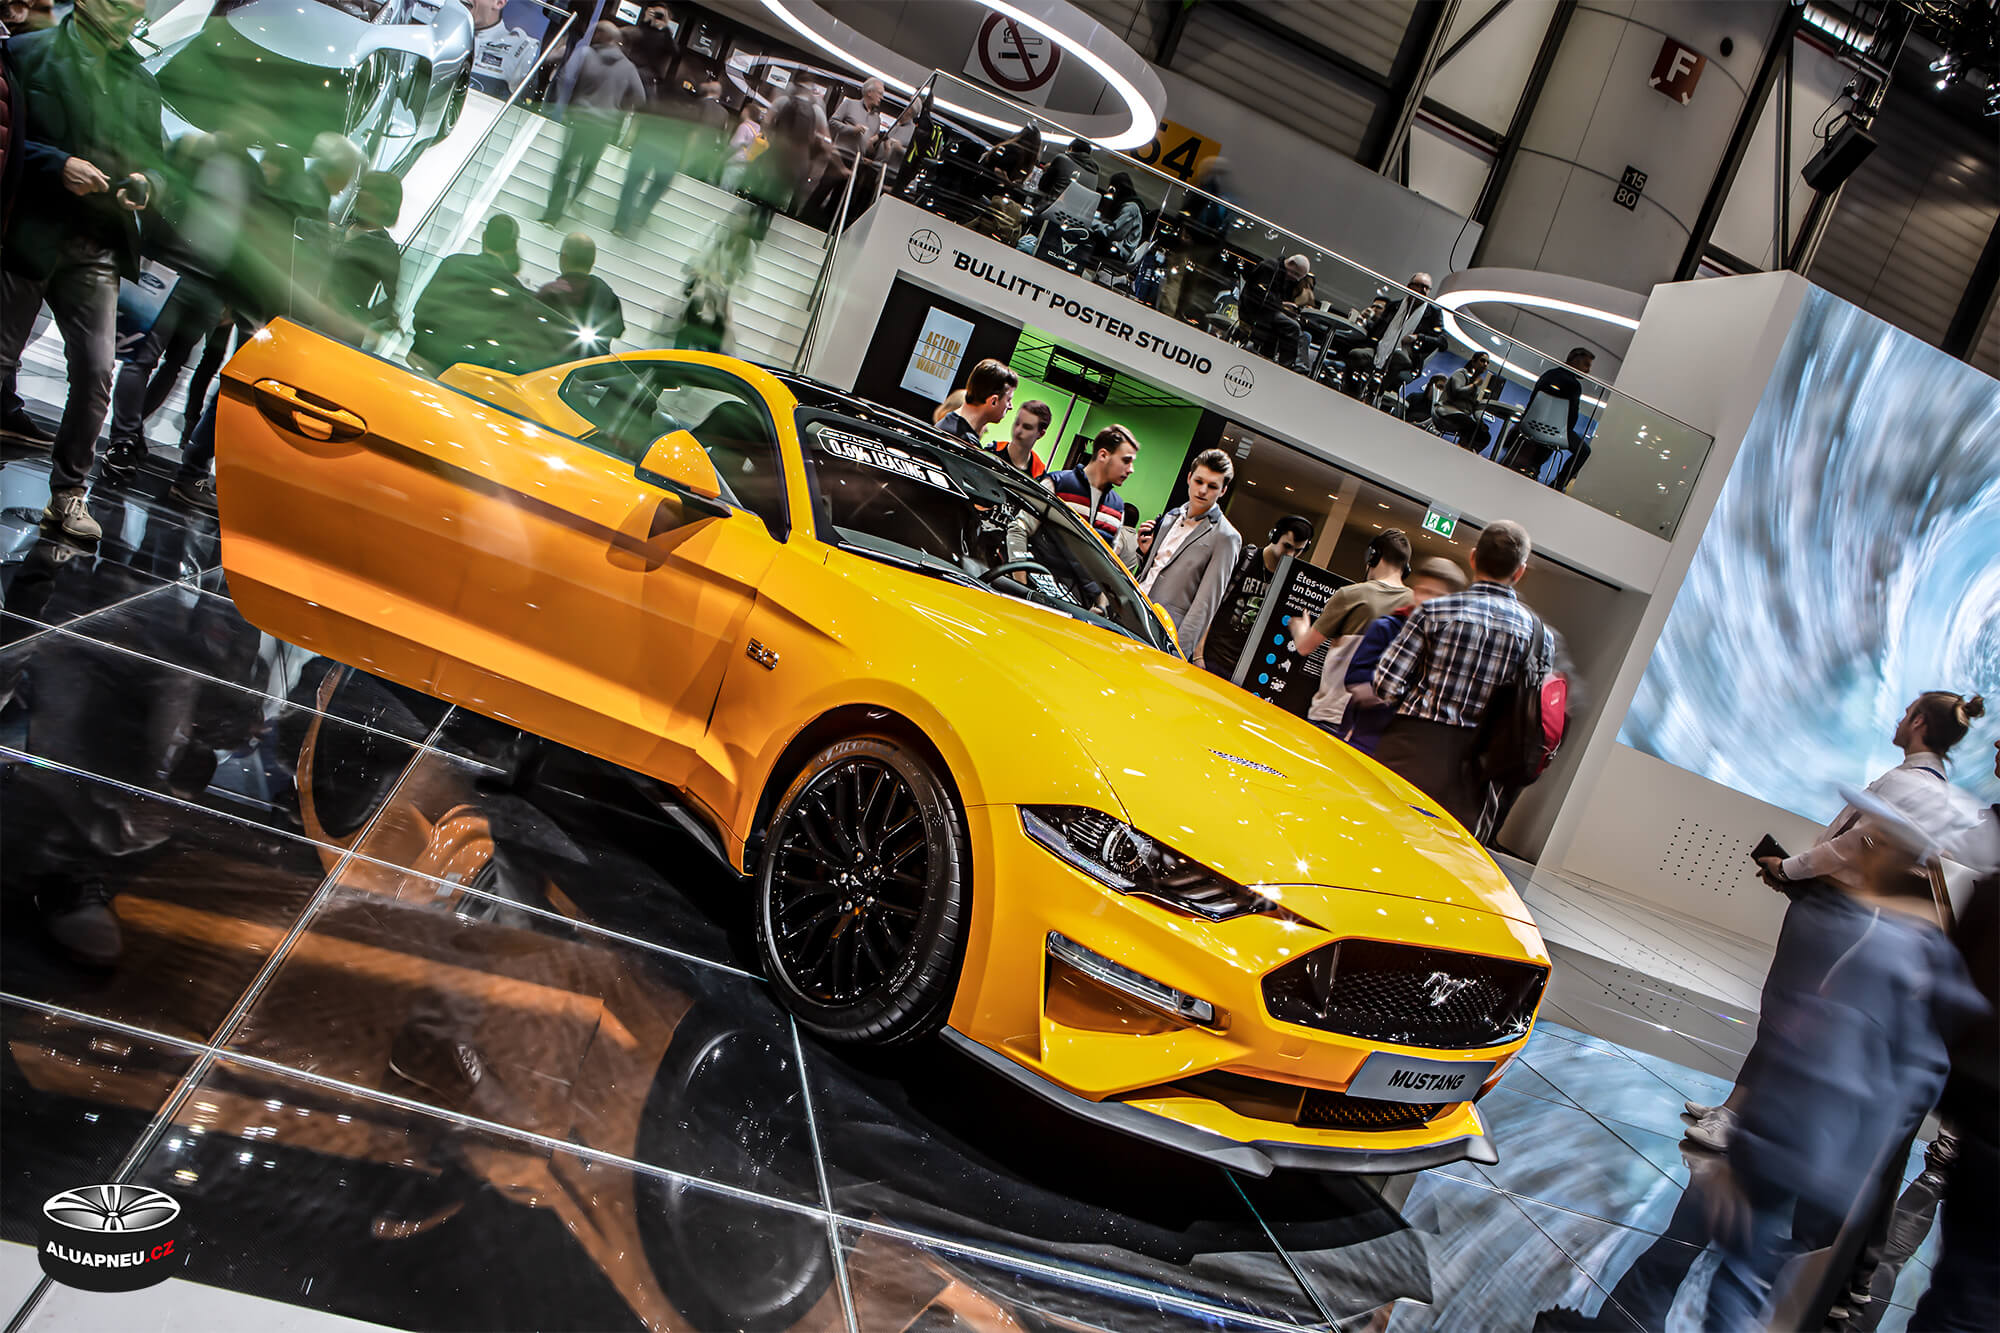 Disky Ford Mustang